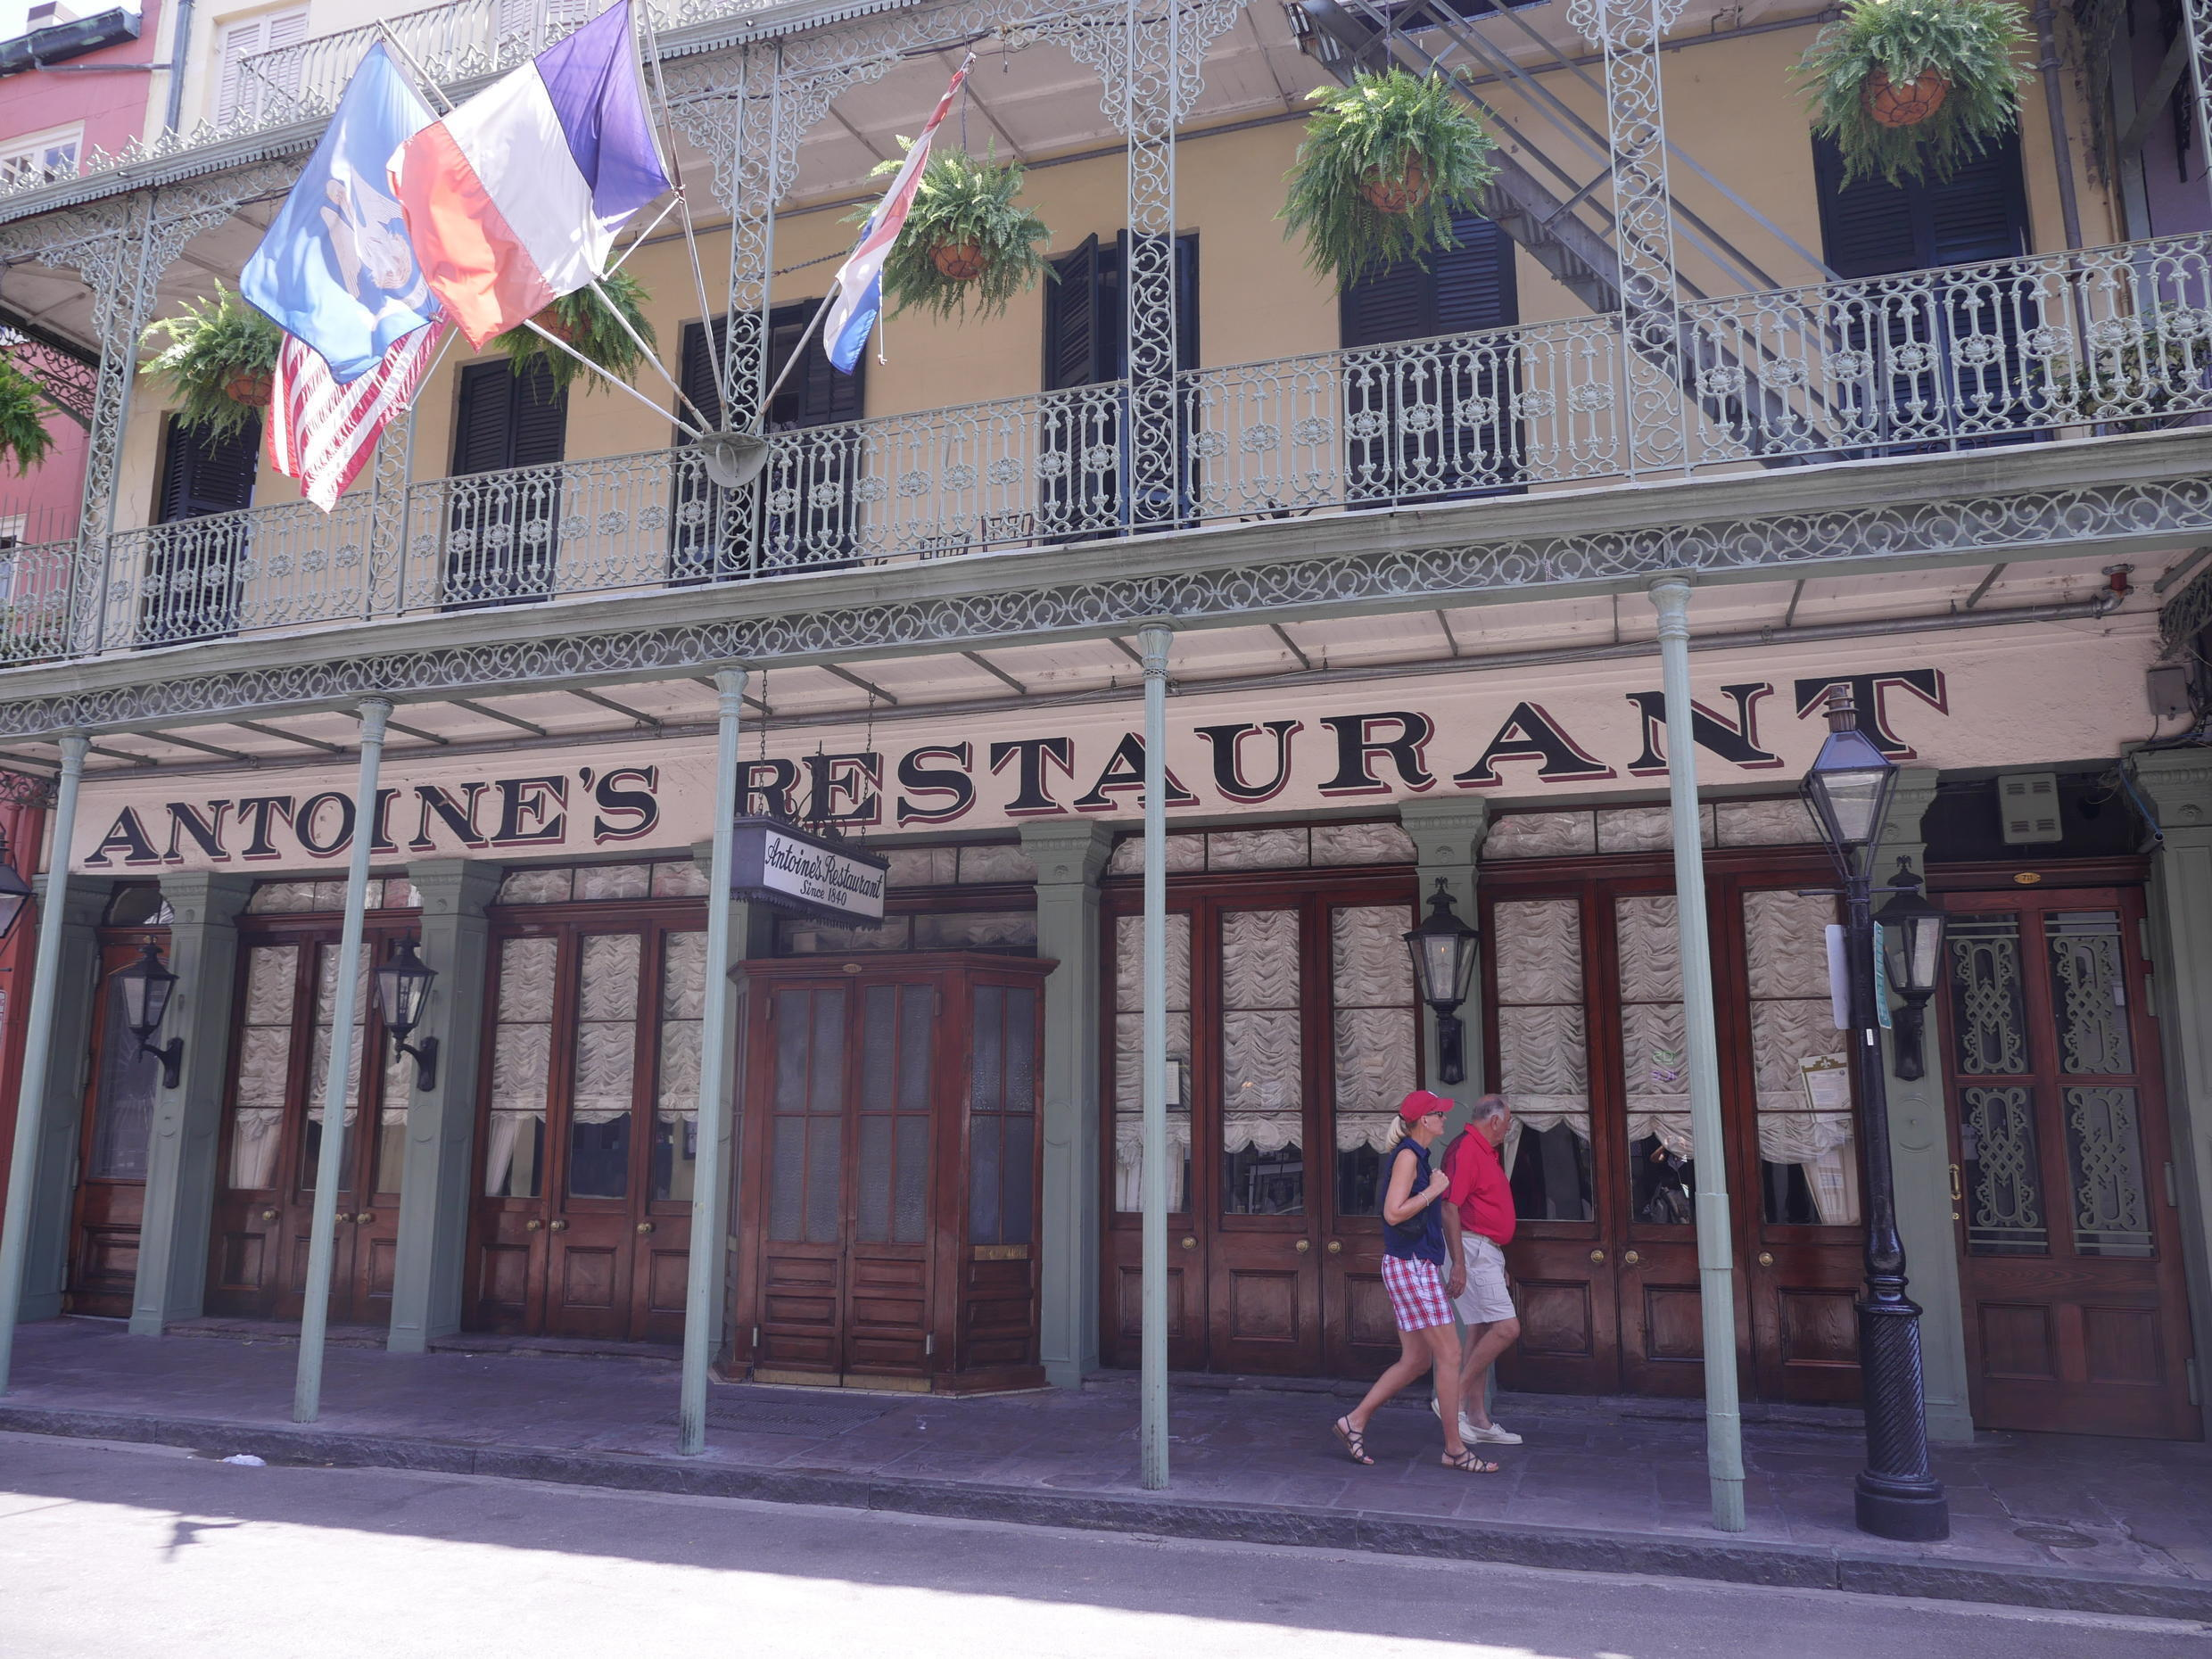 Antoine's Restaurant, in the heart of the French Quarter, is the oldest, family-run restaurant in the US. Founded in 1840 by Antoine Alciatore , this year the grande dame of French-Creole fine dining celebrates its 175th birthday!